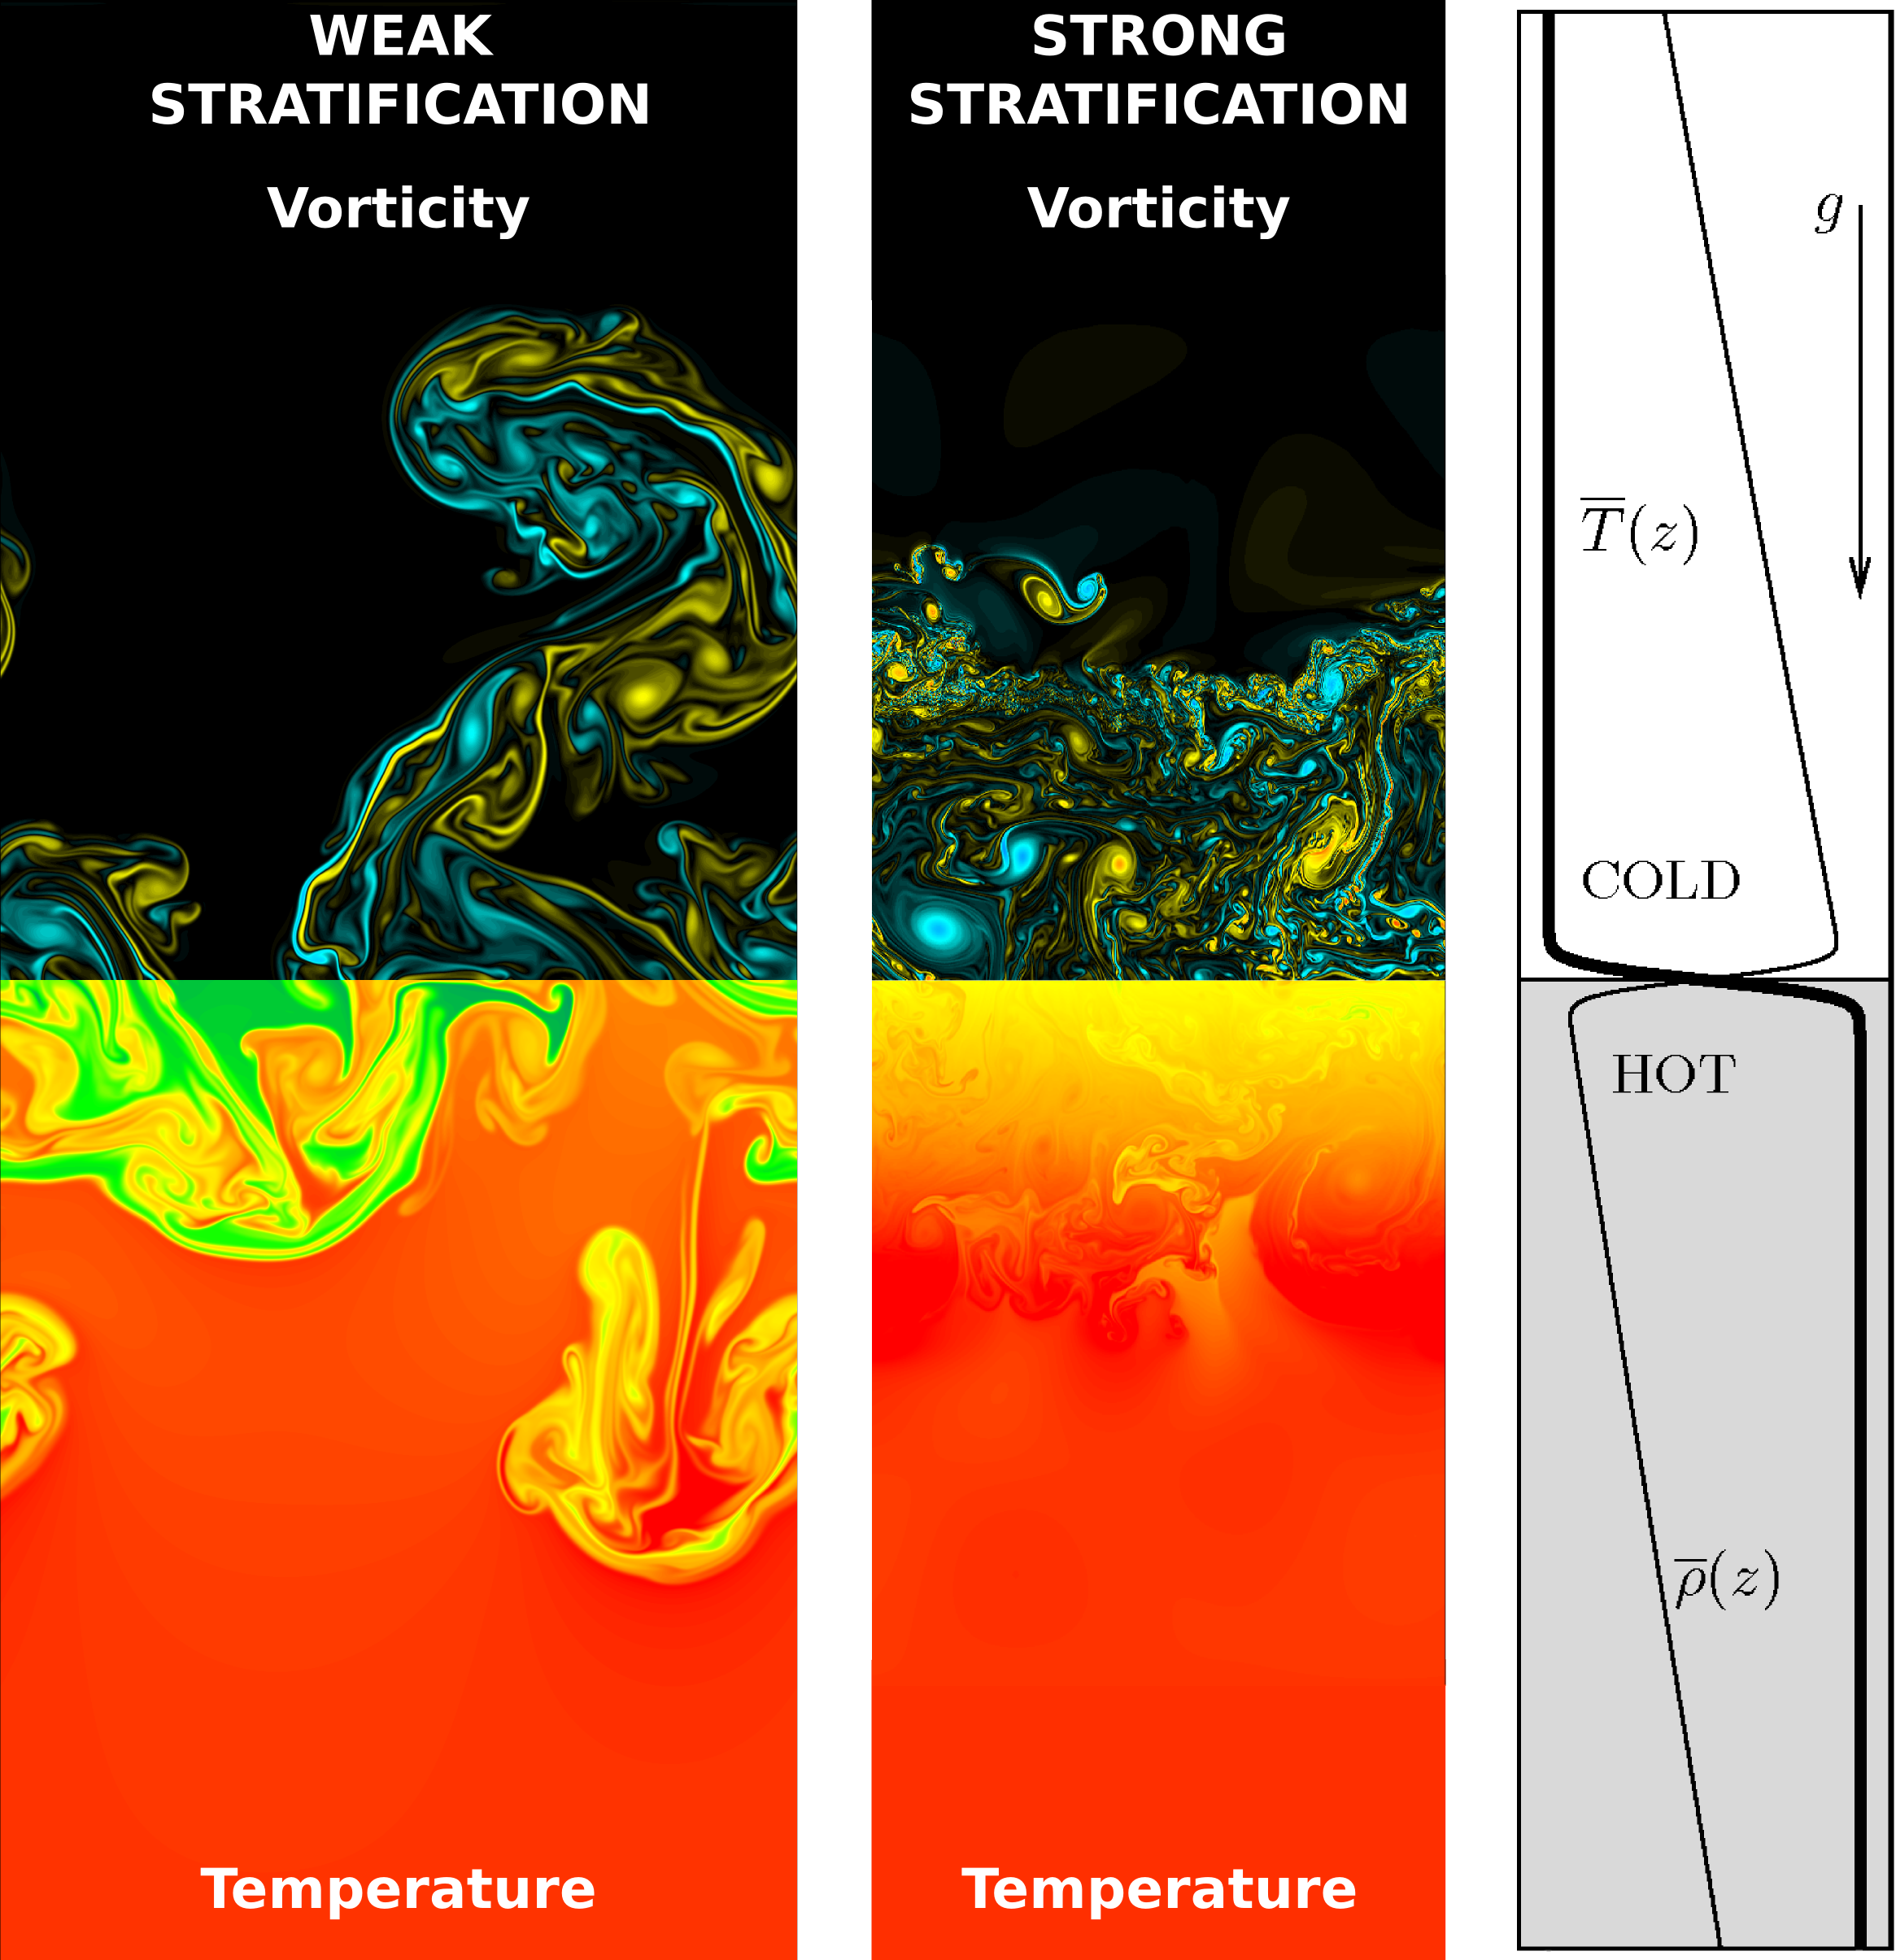 Right panel: initial vertical density and temperature profiles. Left and middle panels: Vorticity and temperature snapshots with weak and strong stratification, respectively. Notice the free rising plumes in the left panel typical of non-stratified RT system. In the middle panel stratification is stronger and turbulence is confined below and above the unmixed fluid at rest: at the boundary the temperature profile overshoots.